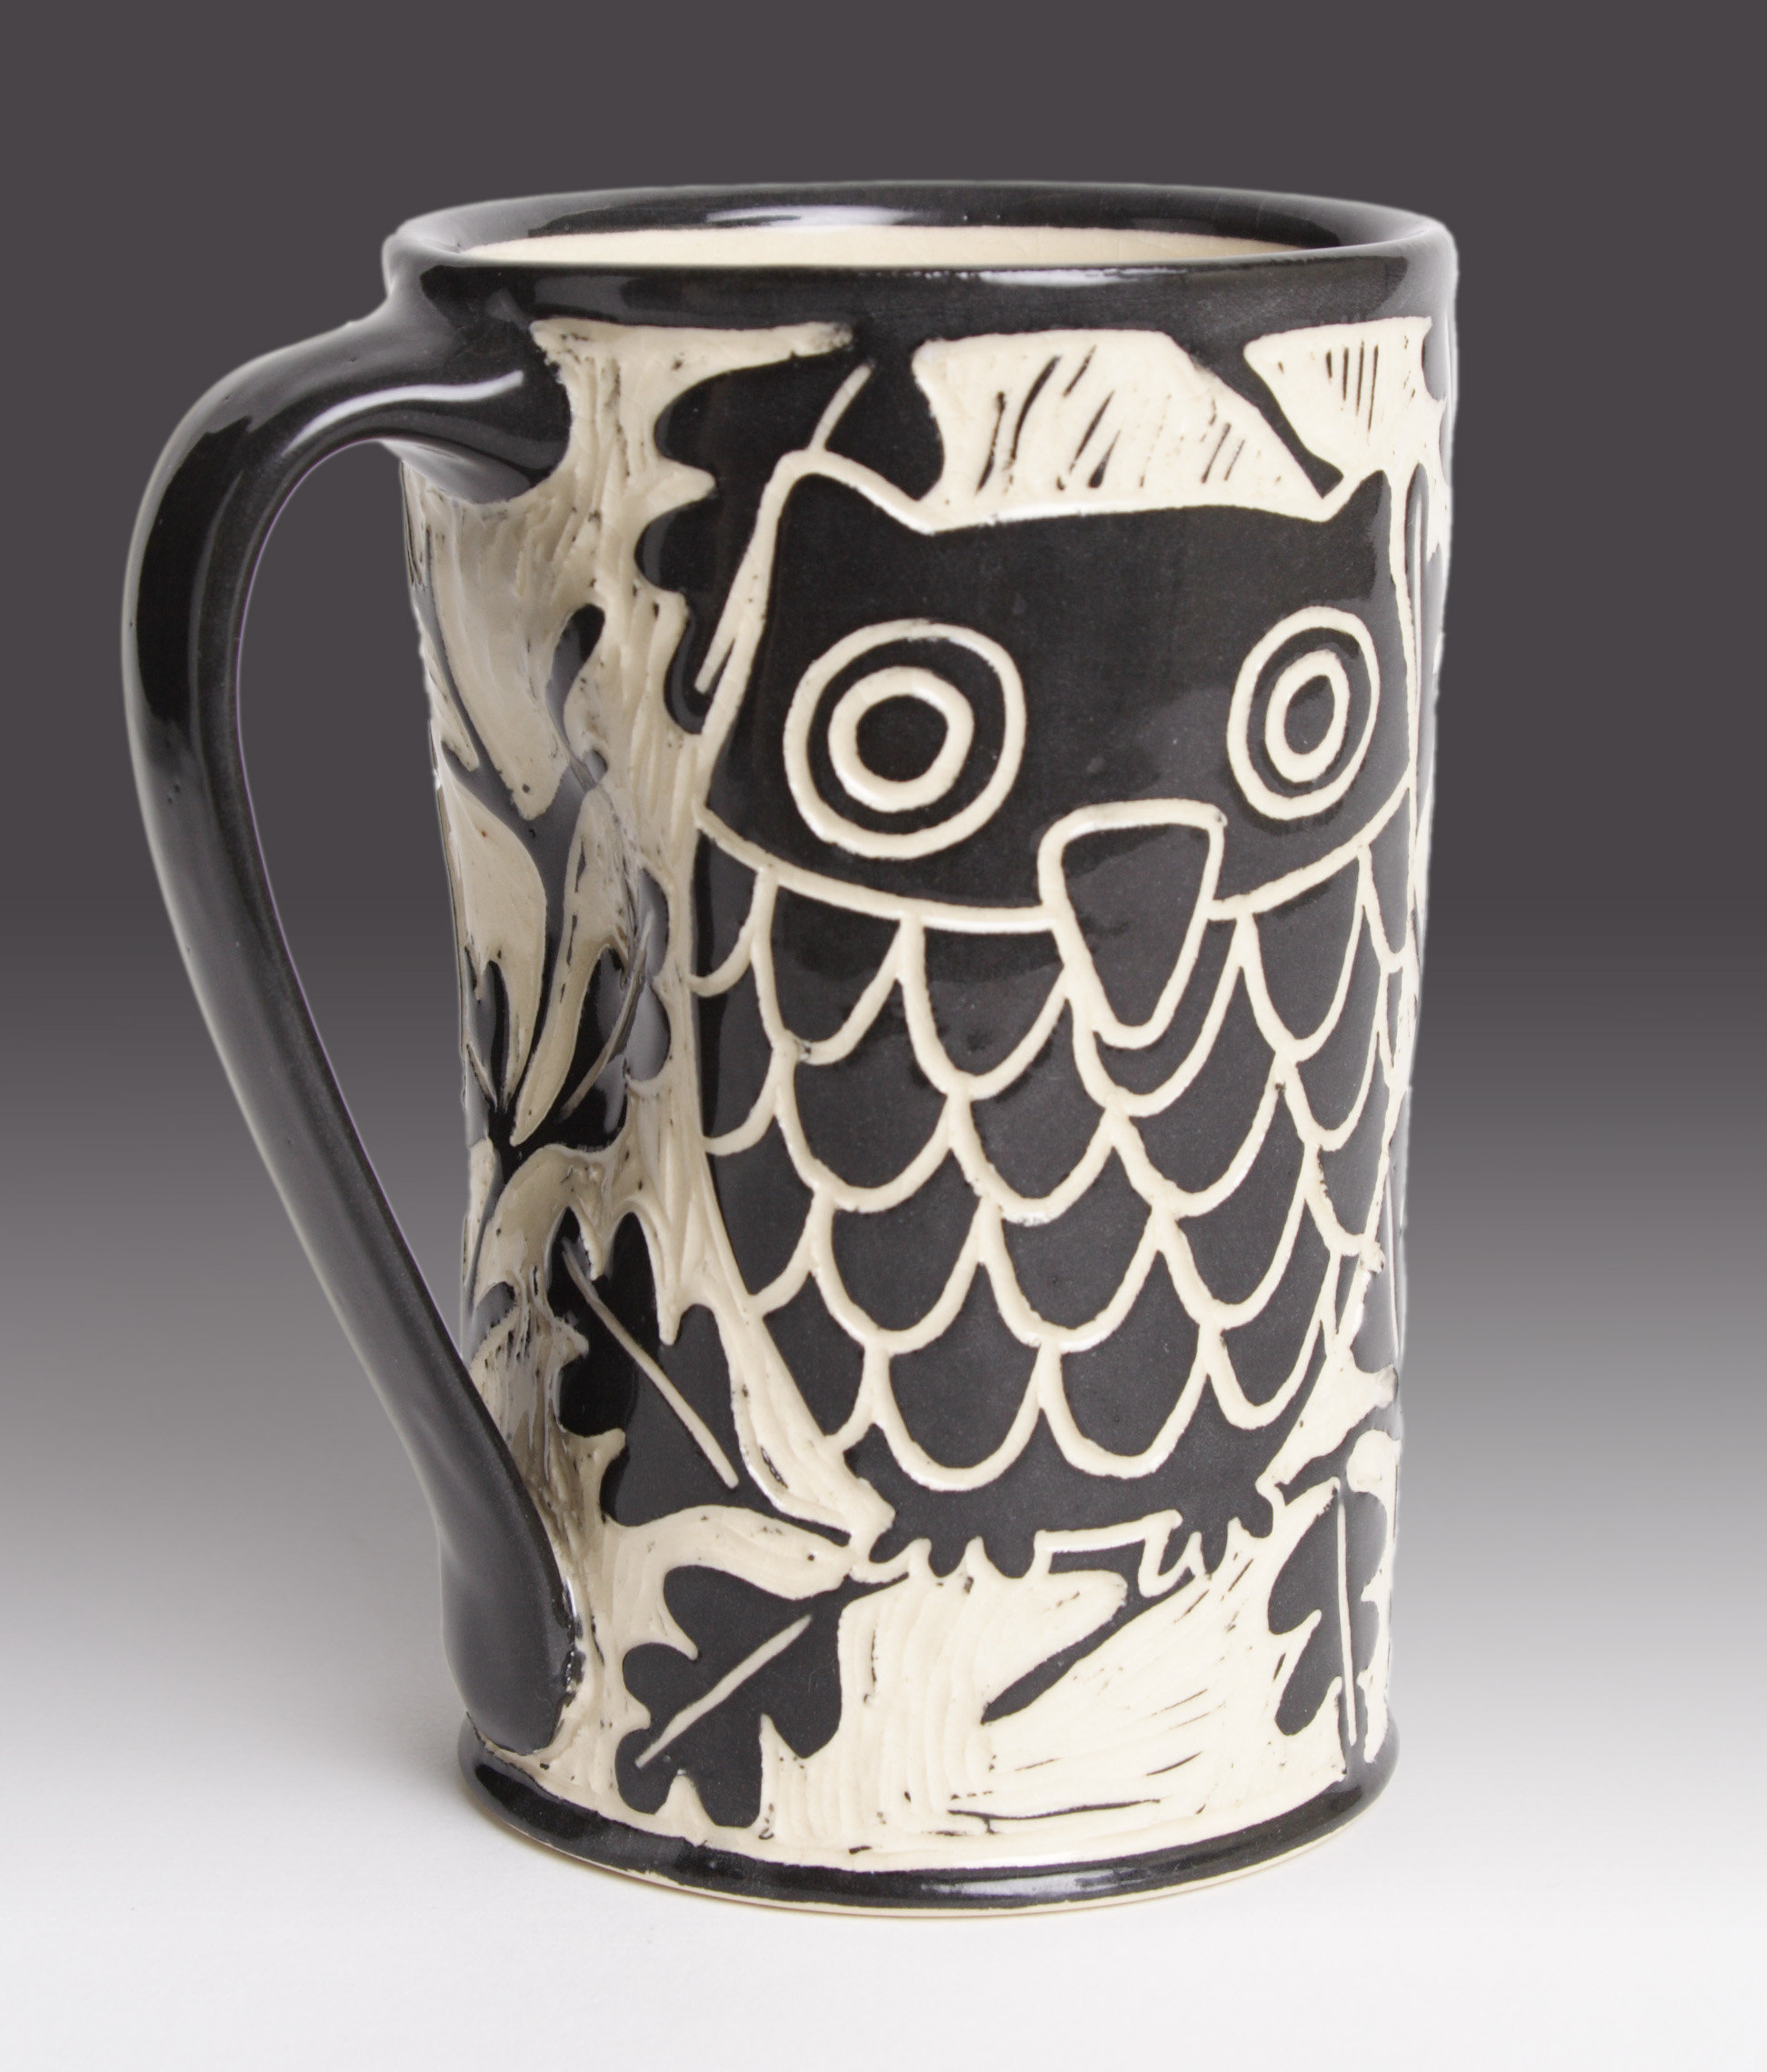 Owl Ceramic Mug Owl Mug By Jennifer Falter Ceramic Mug Artful Home